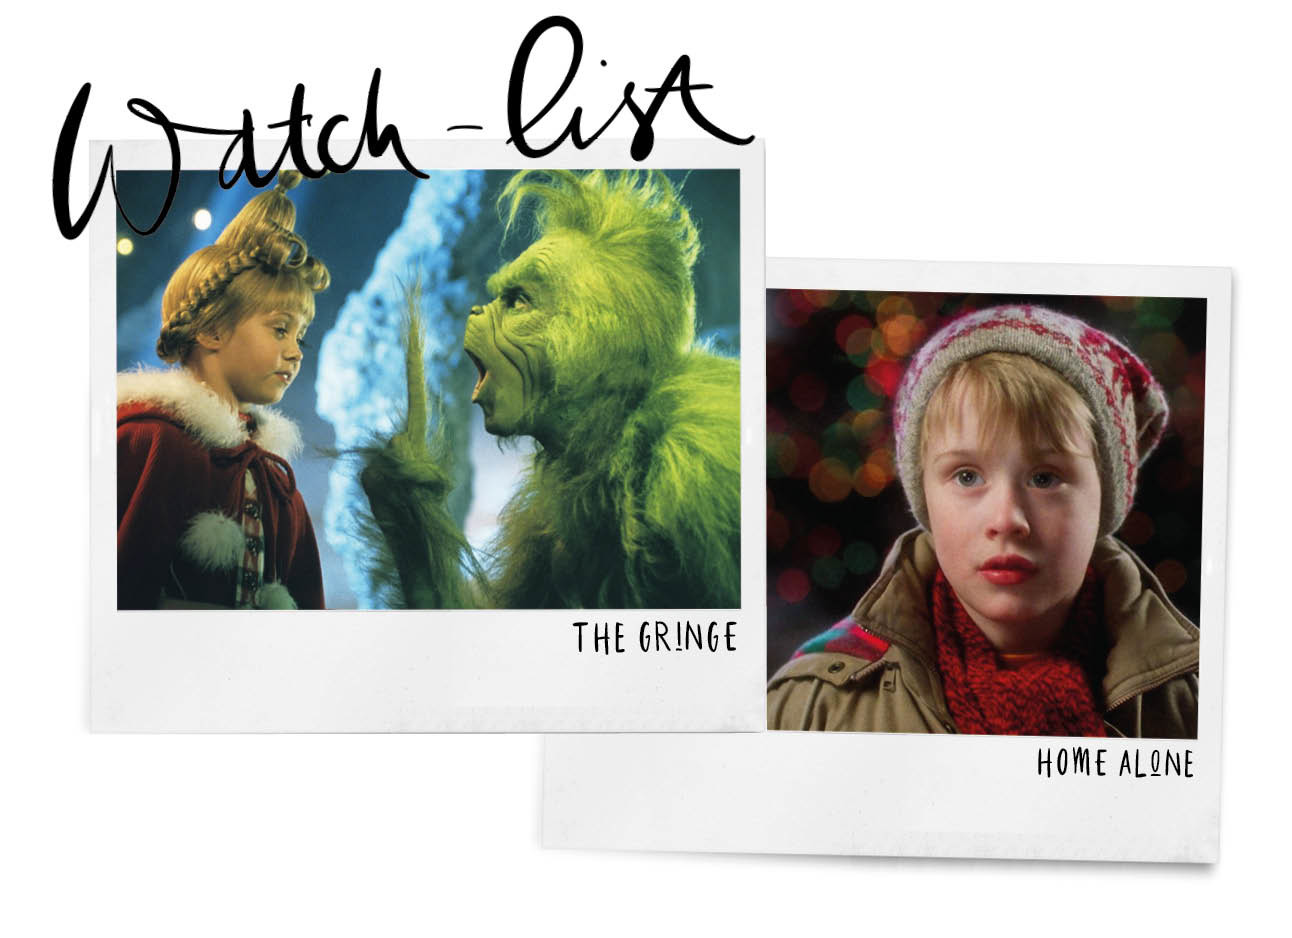 beeld uit de film the grinch en ui de film home allone